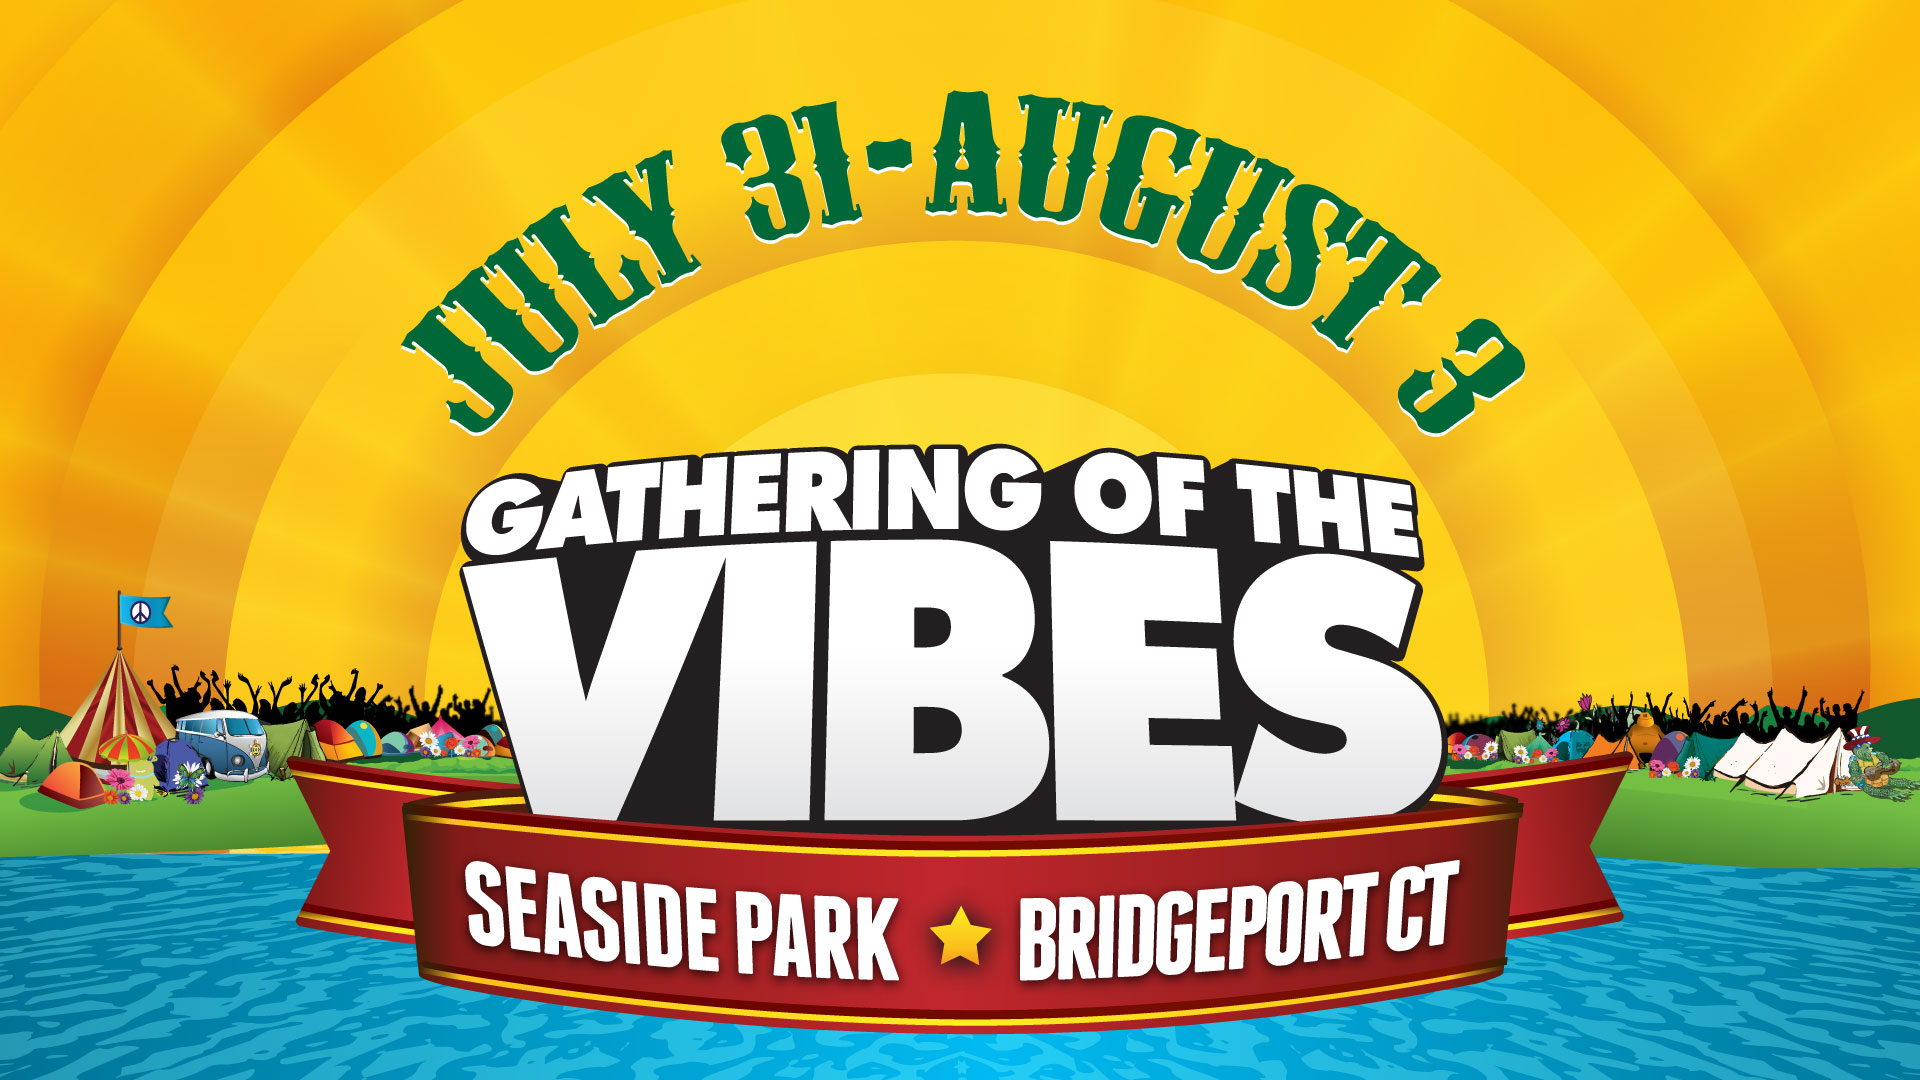 Gathering of the vibes 2018 photos